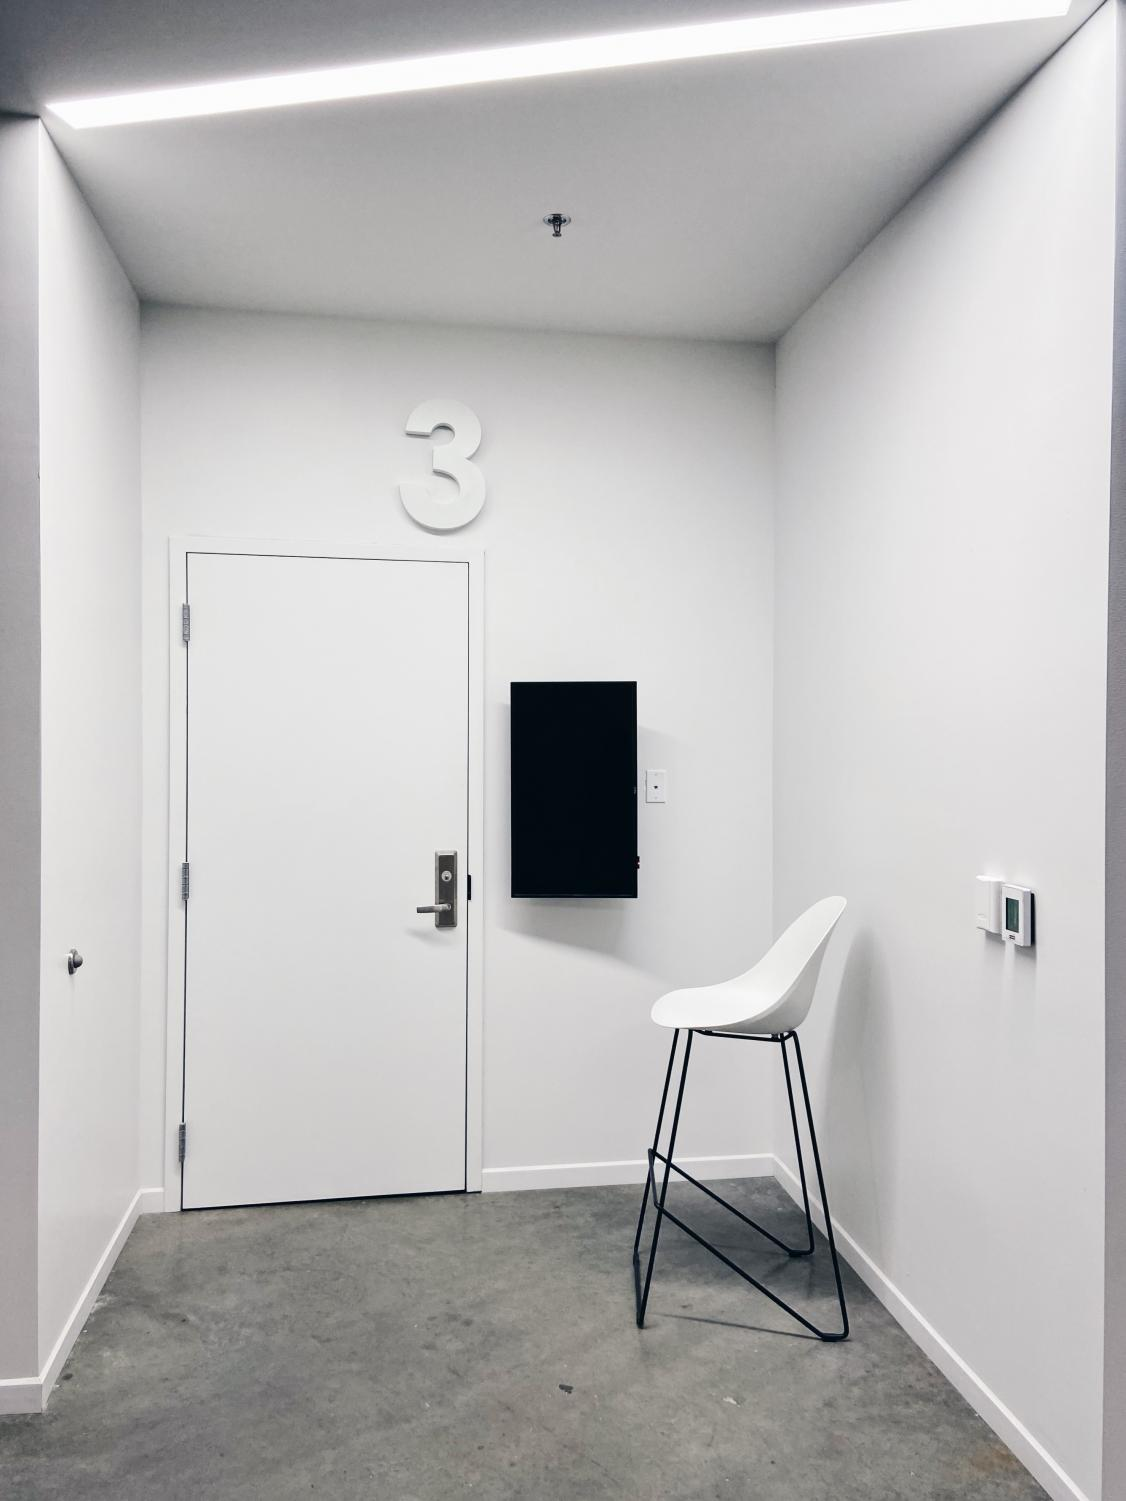 Narrow+white+walls+frame+this+monochromatic+entryway+at+The+Chauncey+Hotel.+%28free+form%29